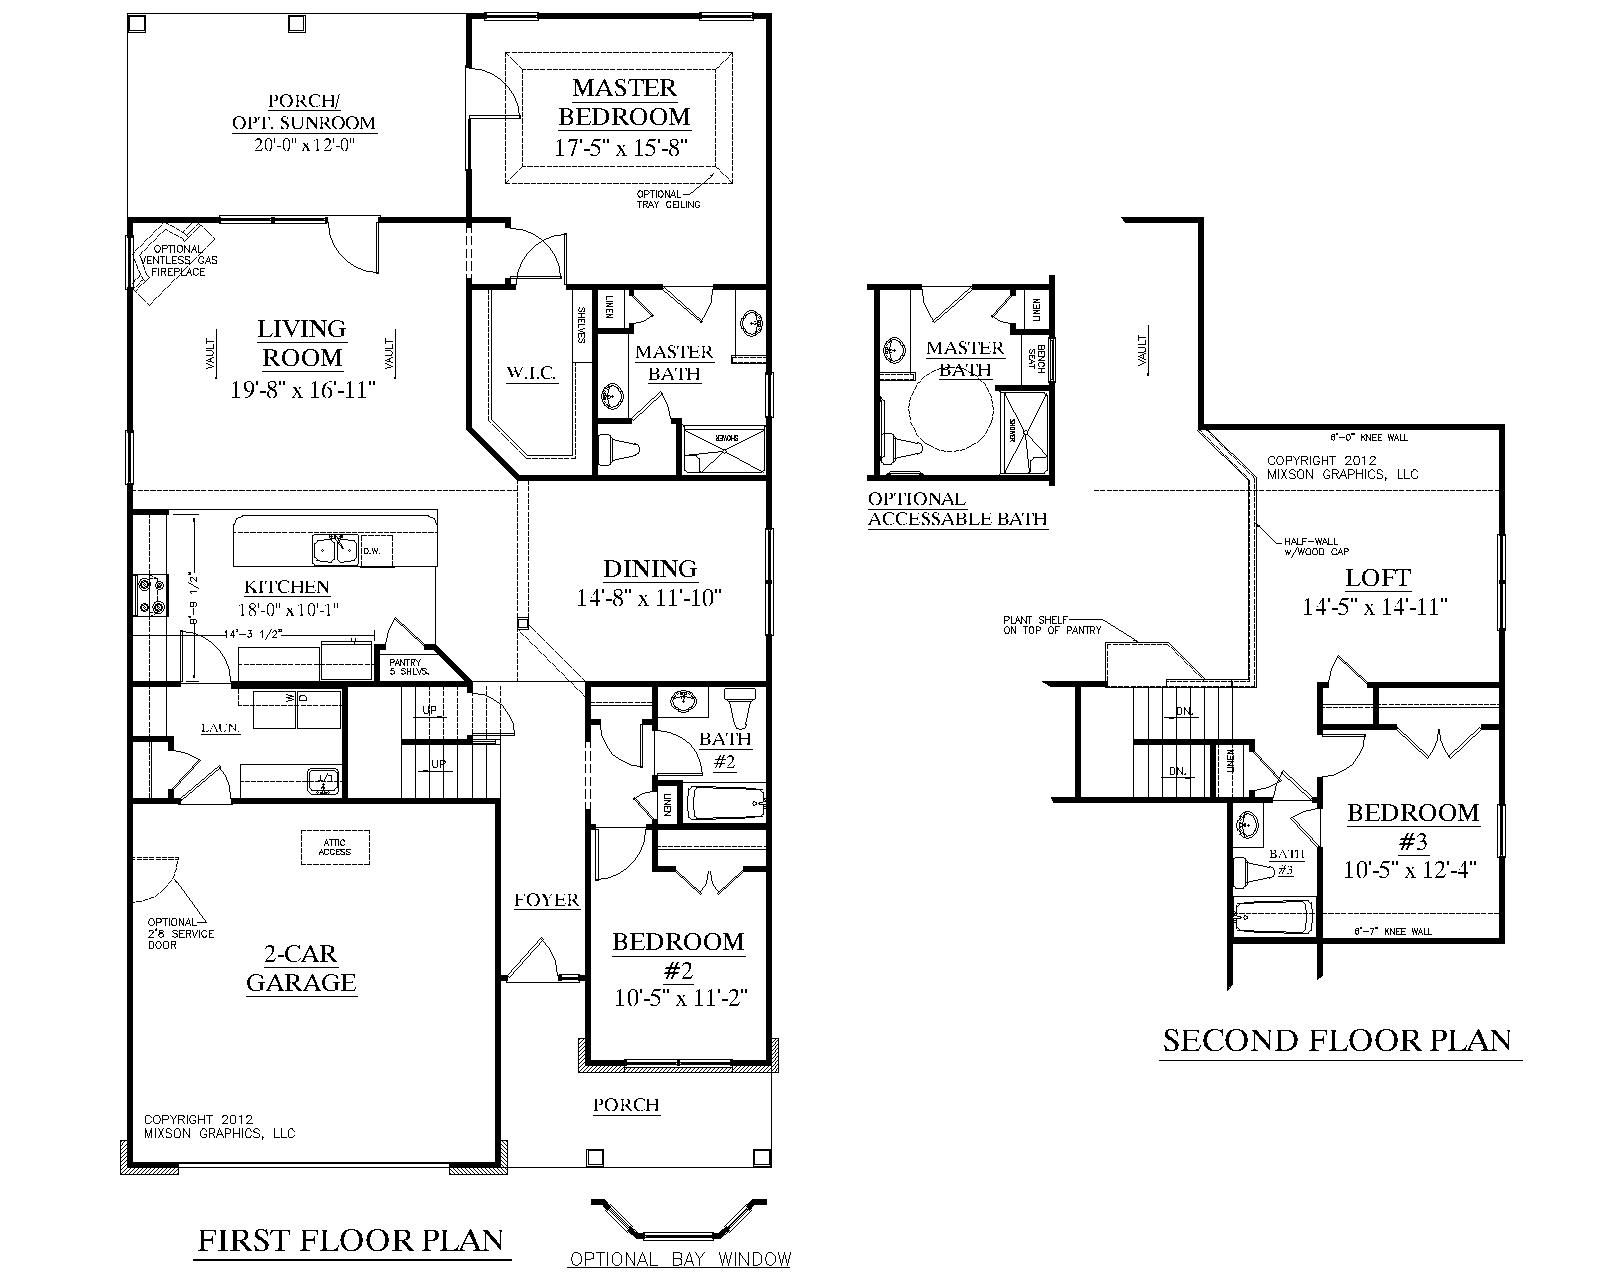 House plan 2224 kingstree floor plan traditional 1 1 2 for 7 bedroom house designs